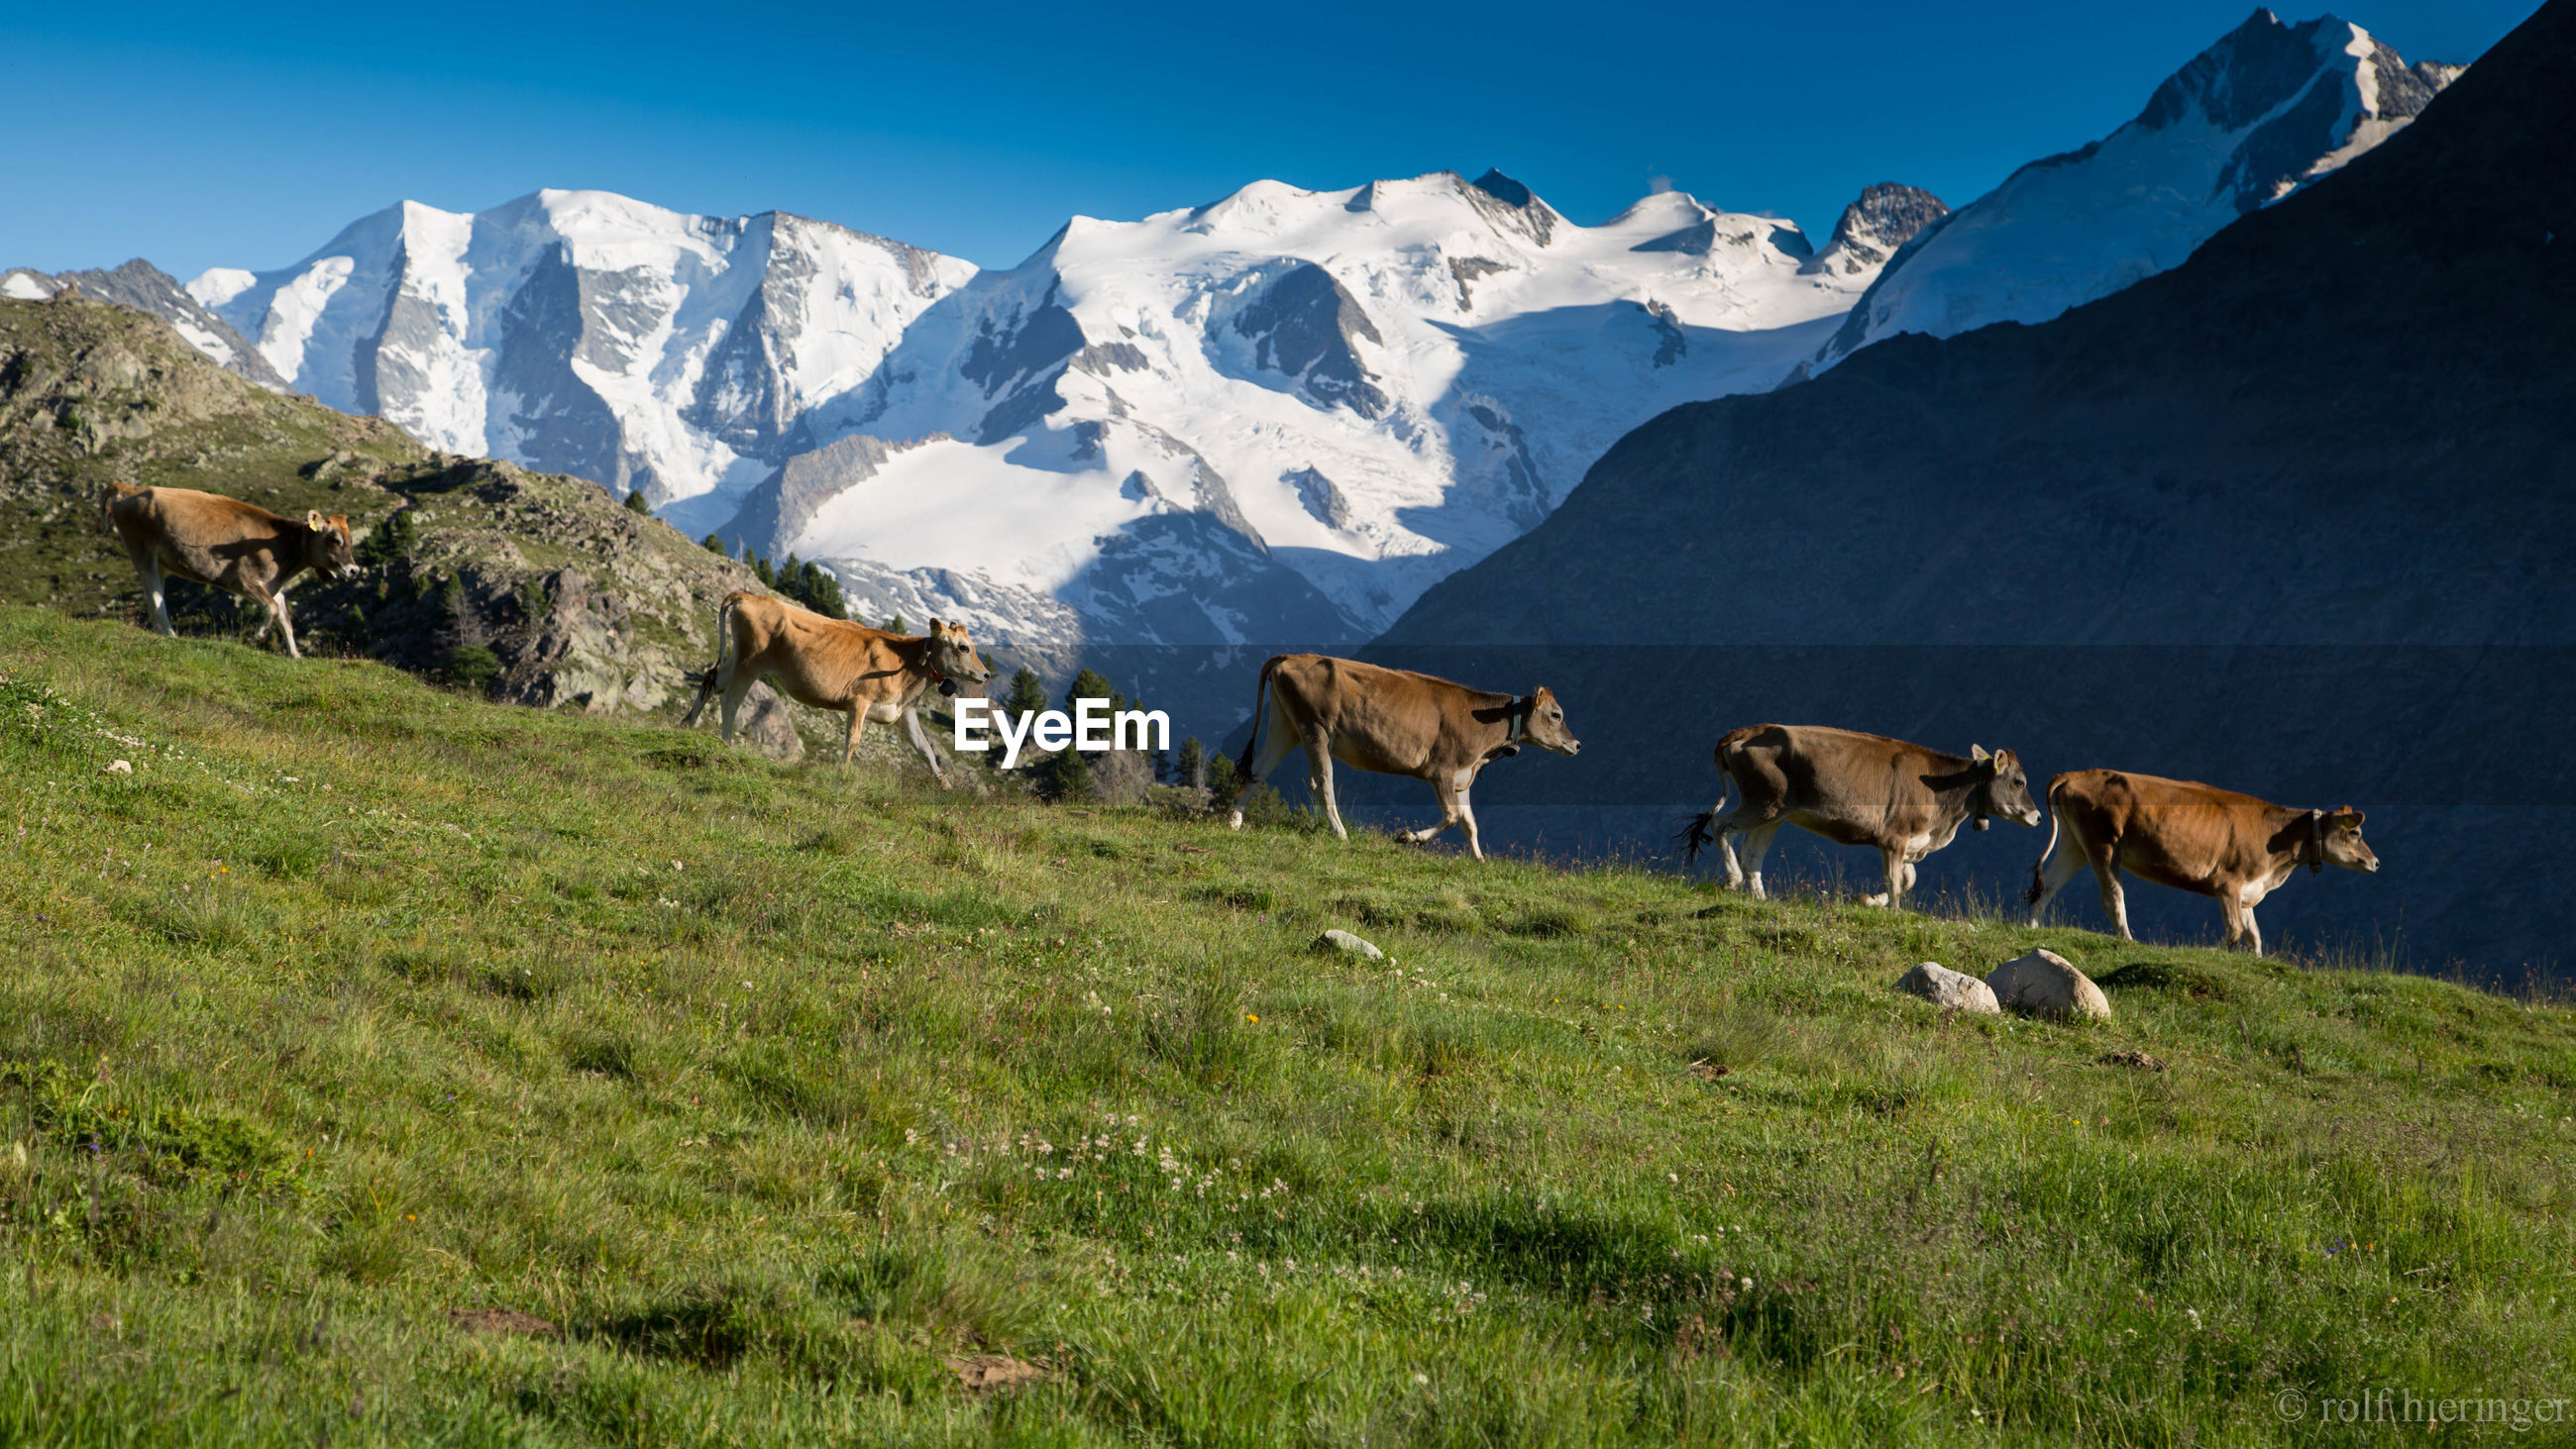 Cows walking on hill against snowcapped mountain